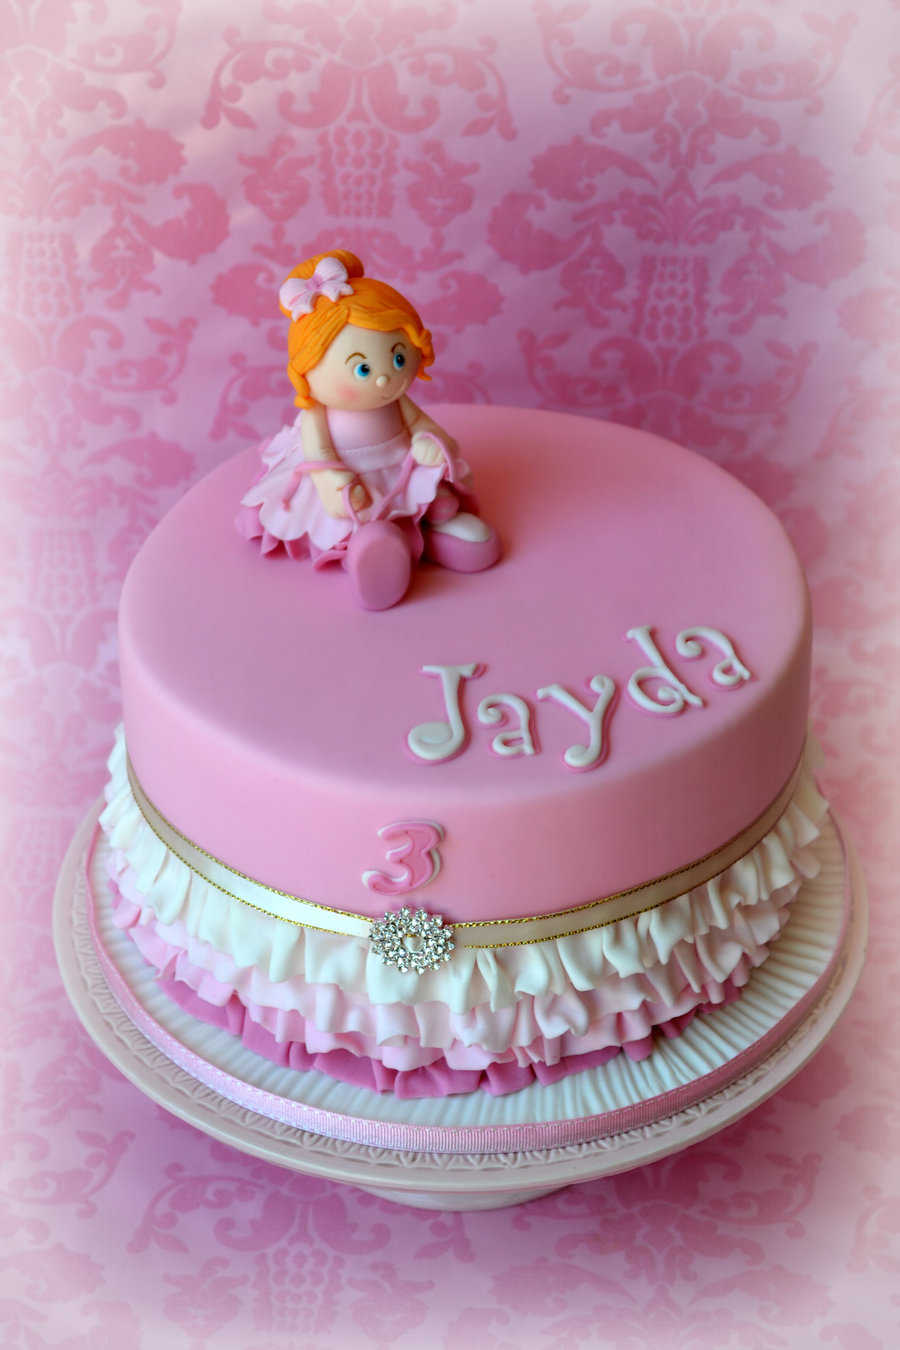 Birthday Cake Pics For Little Girl : Birthday Cake For A Little Girl Who Loves To Dance The ...